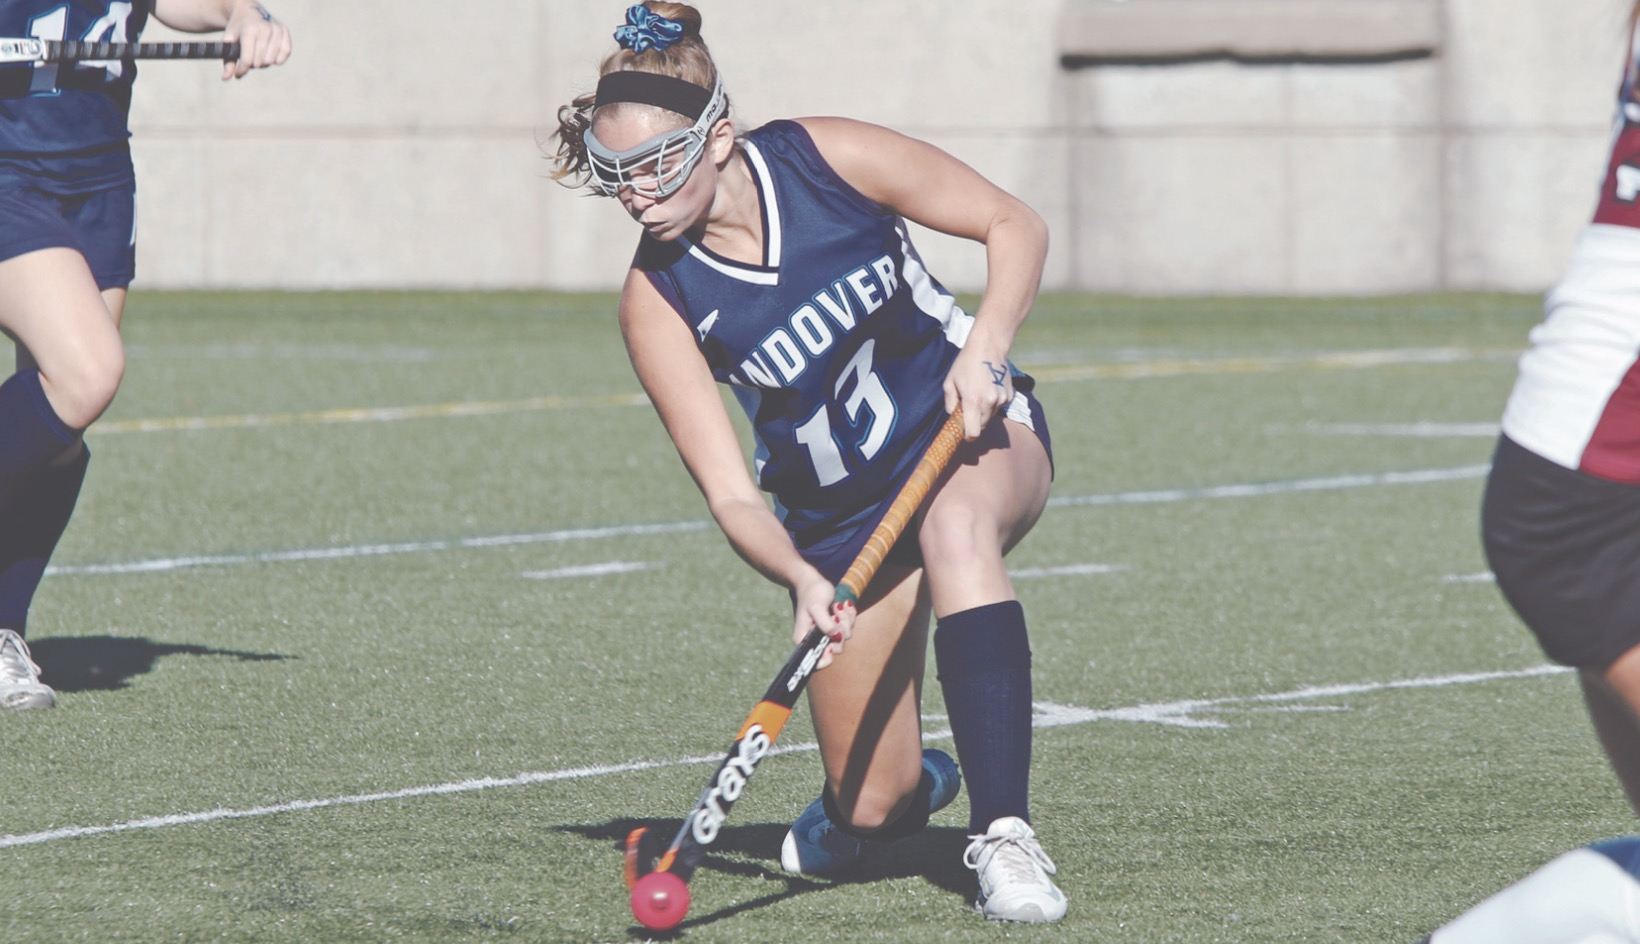 Post-Graduate Payton Donato '17 scored a goal for Andover against Choate.